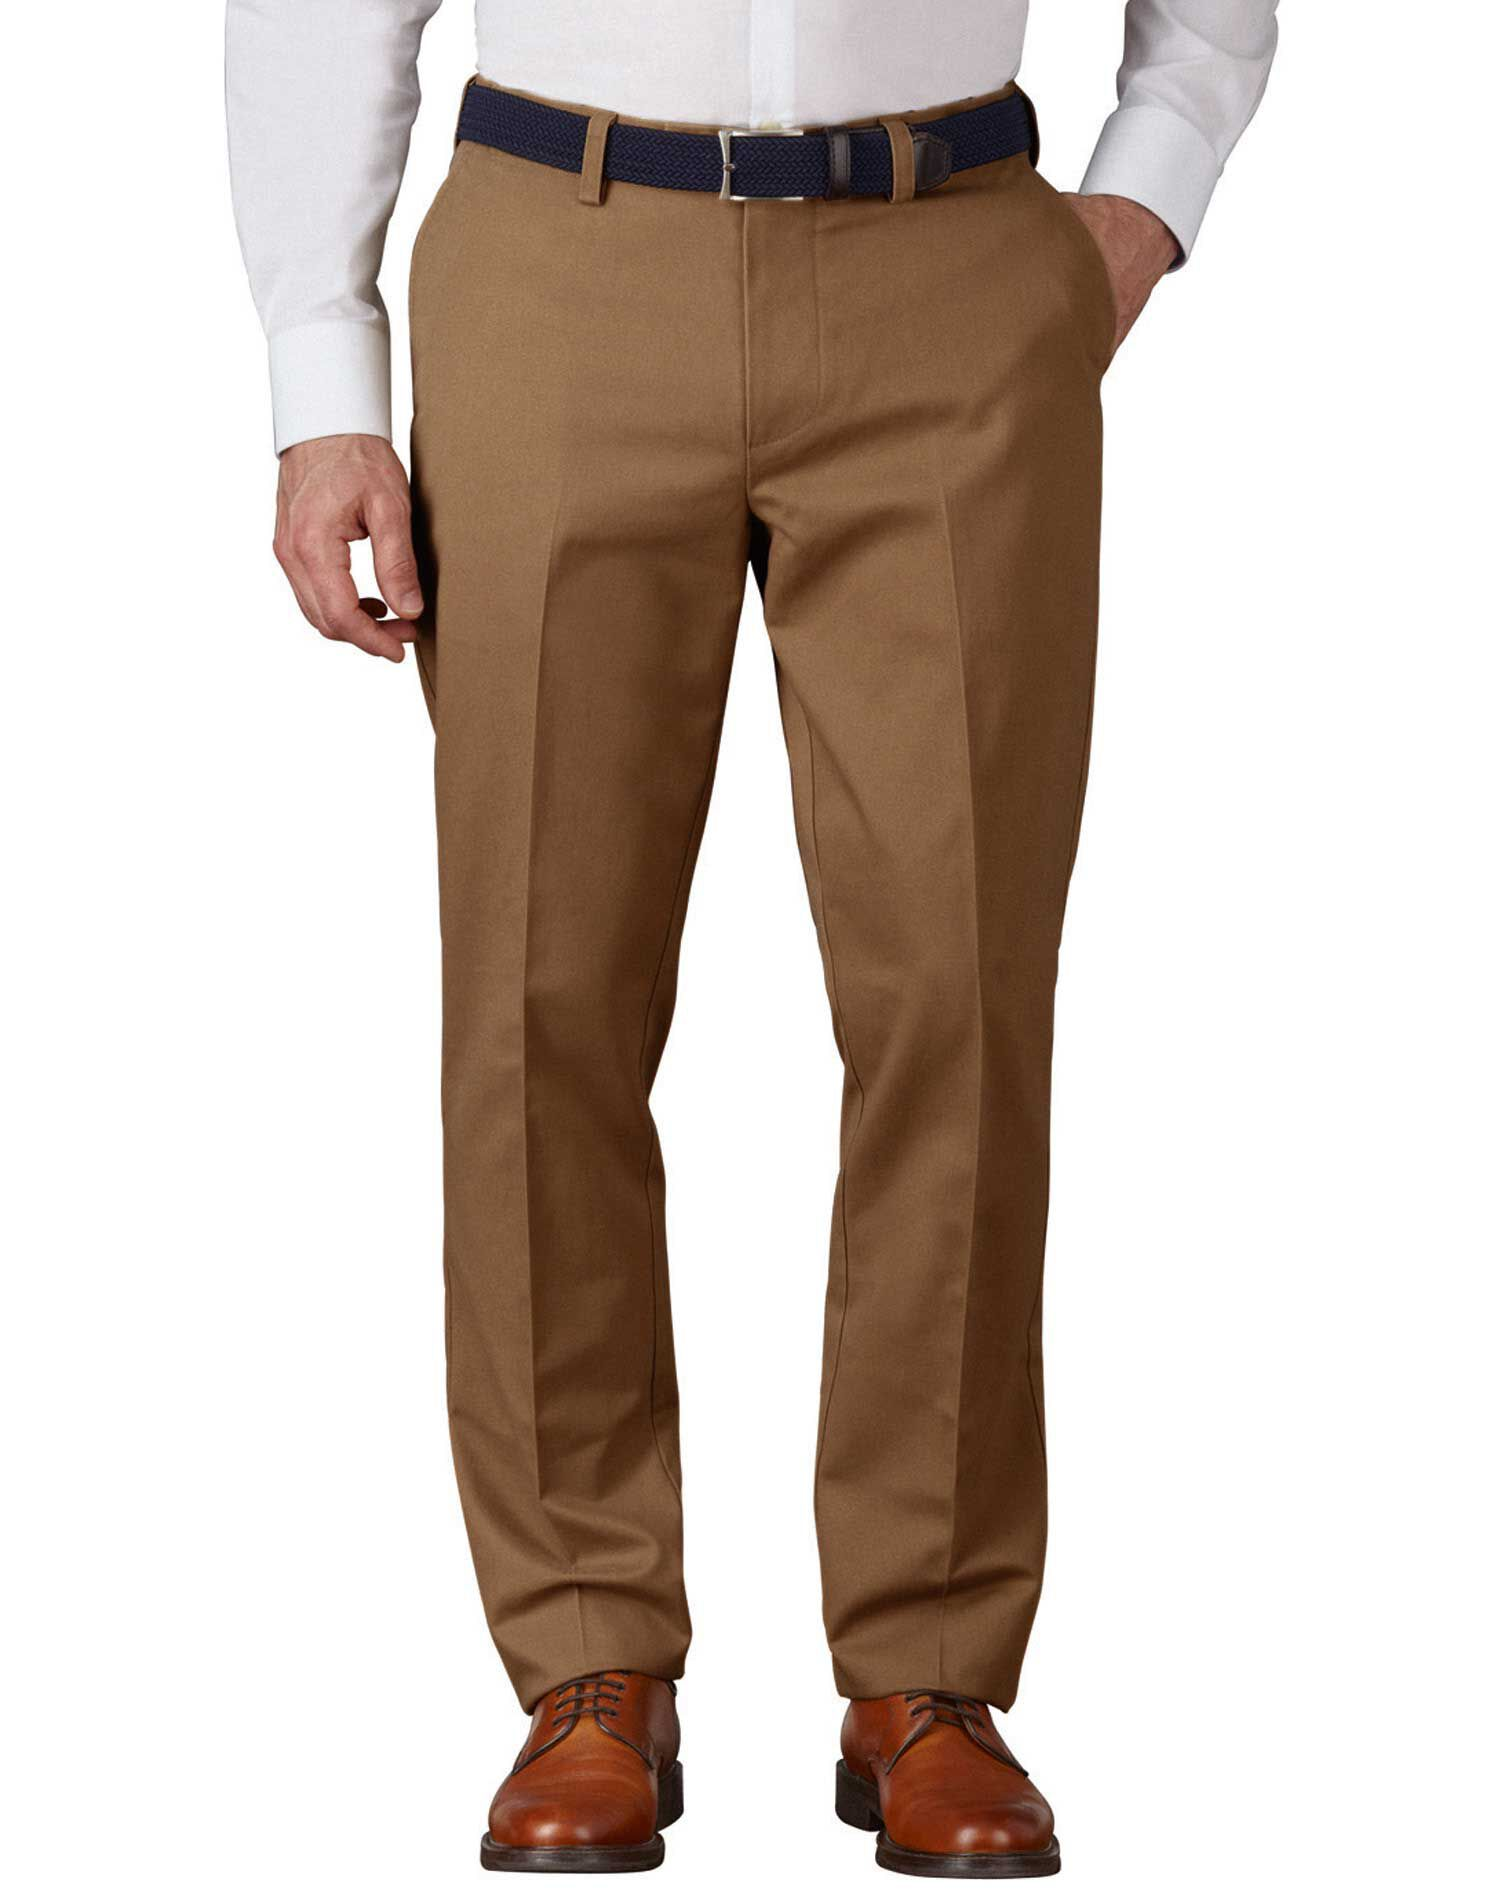 Camel Extra Slim Fit Flat Front Non-Iron Cotton Chino Trousers Size W34 L30 by Charles Tyrwhitt